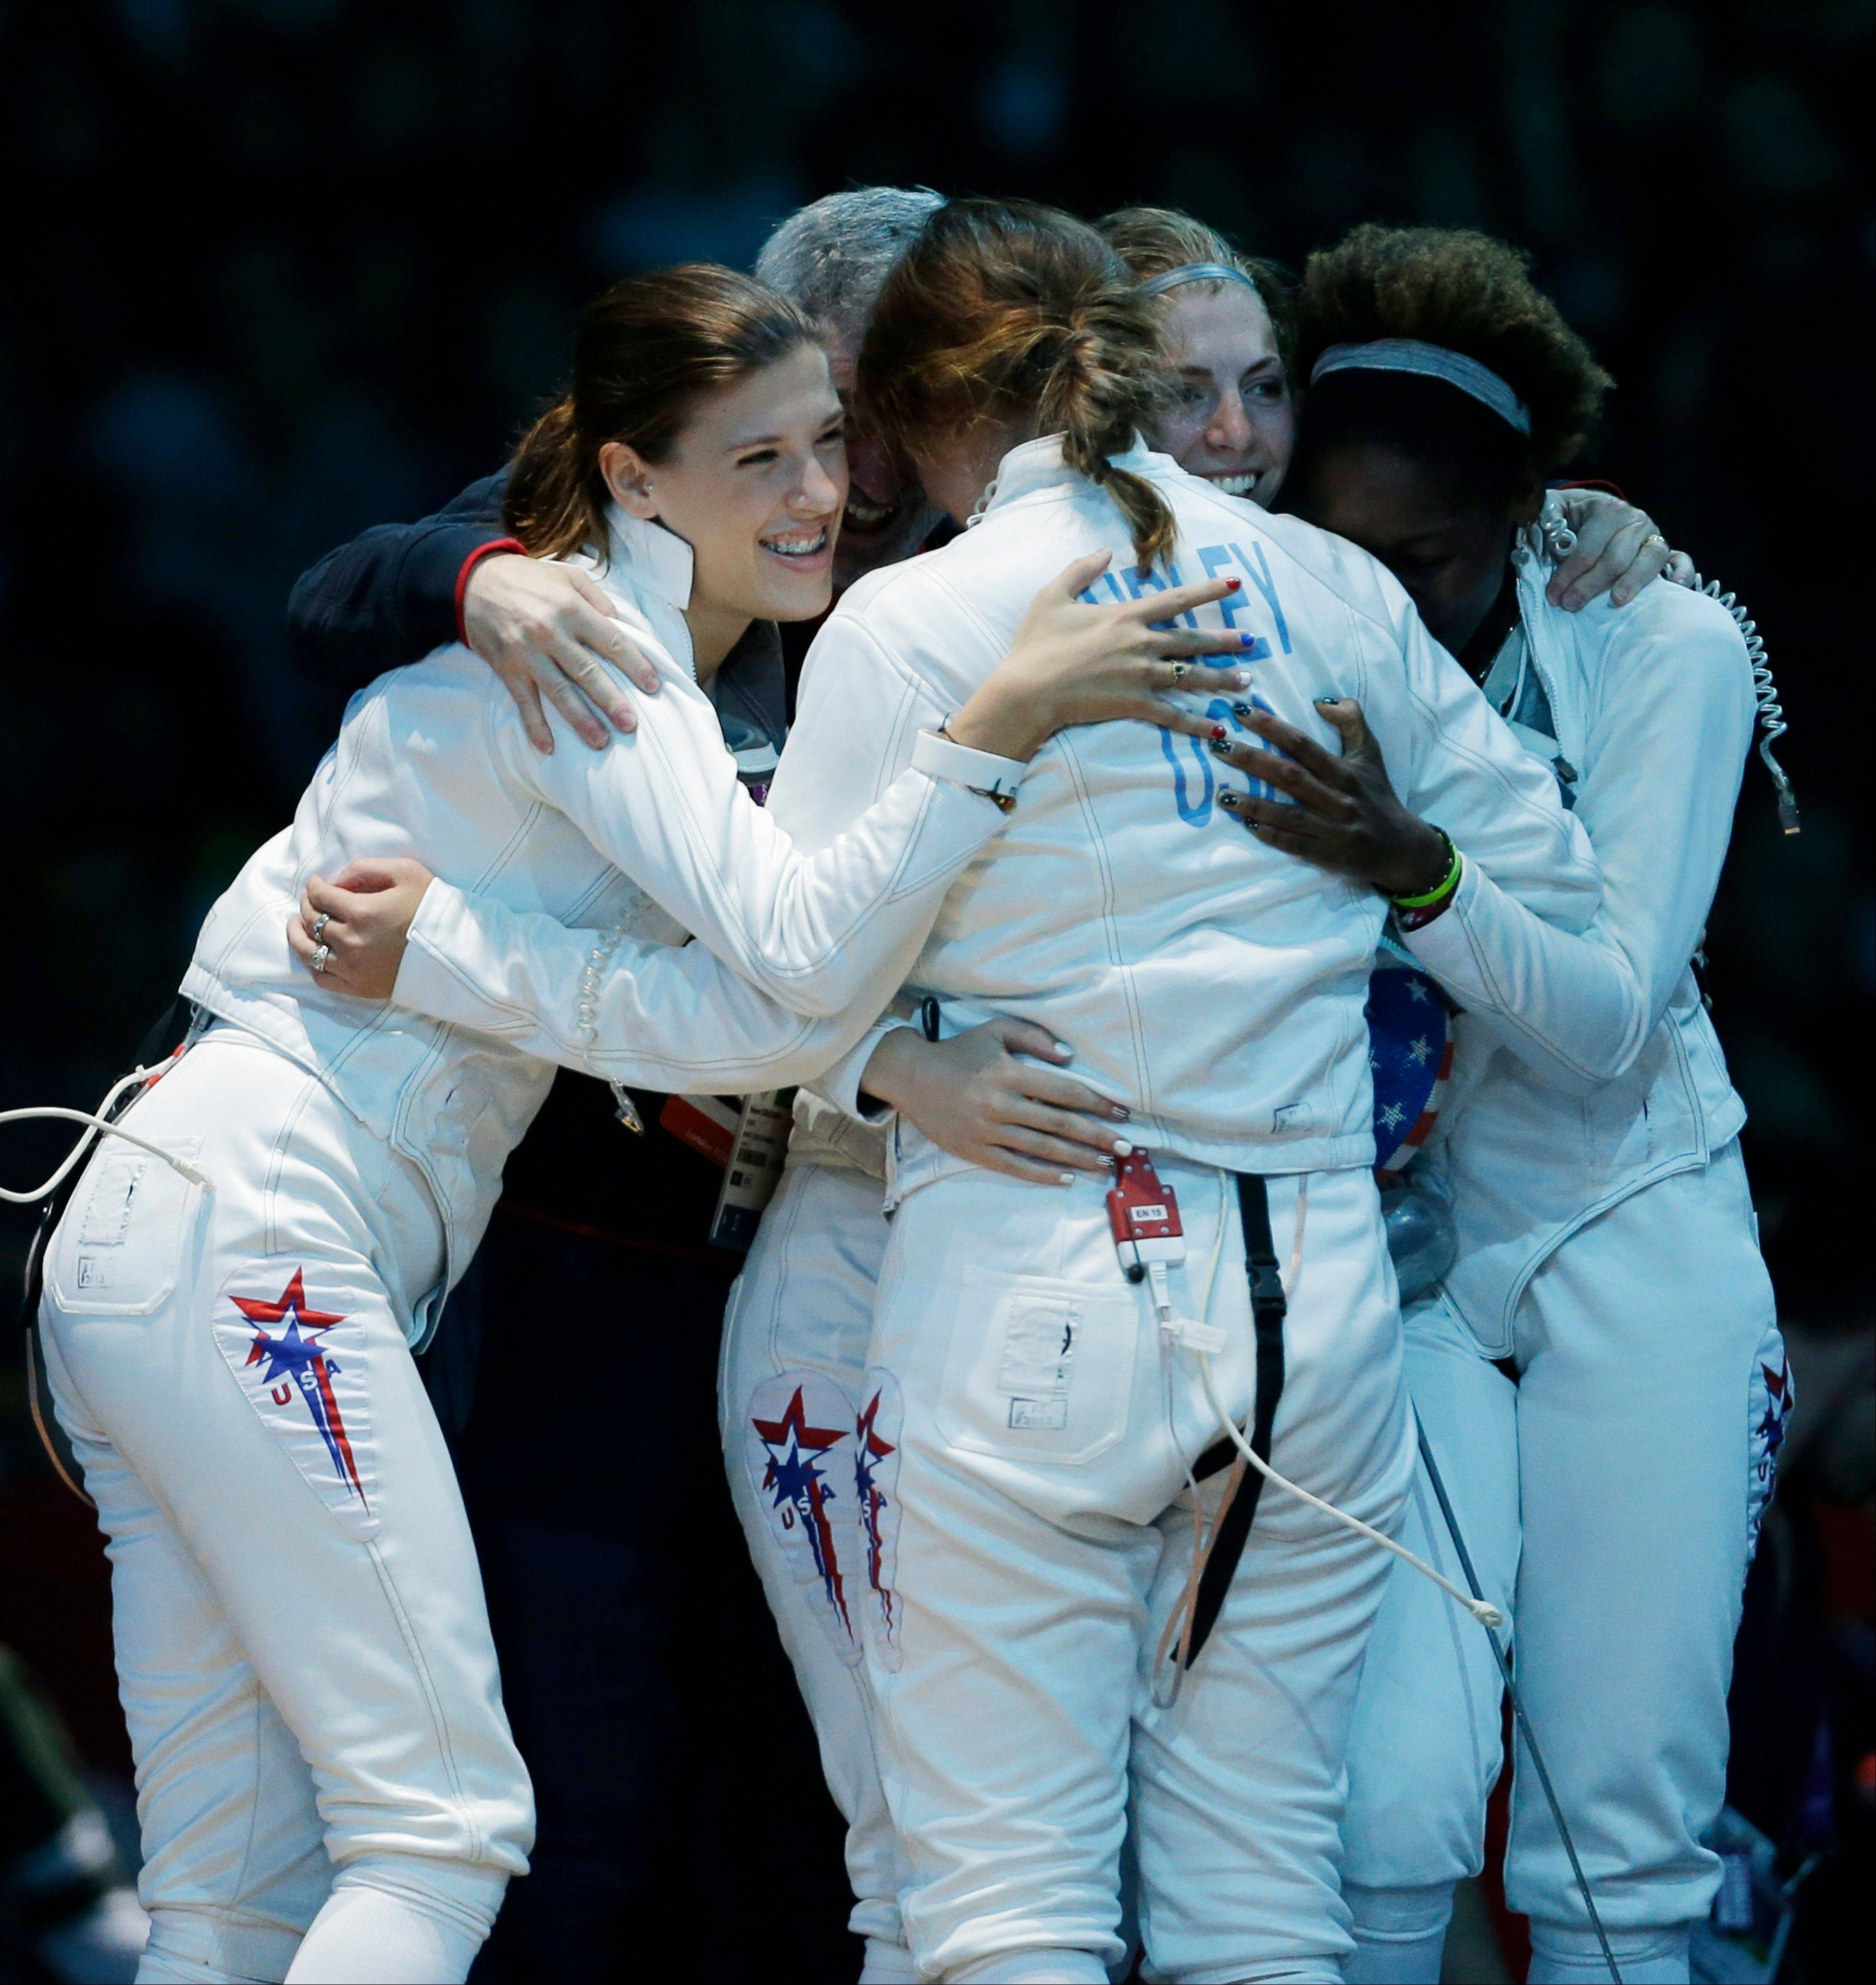 United States players celebrates after defeating Italy in women's team epee fencing at the 2012 Summer Olympics, Saturday, Aug. 4, 2012, in London.